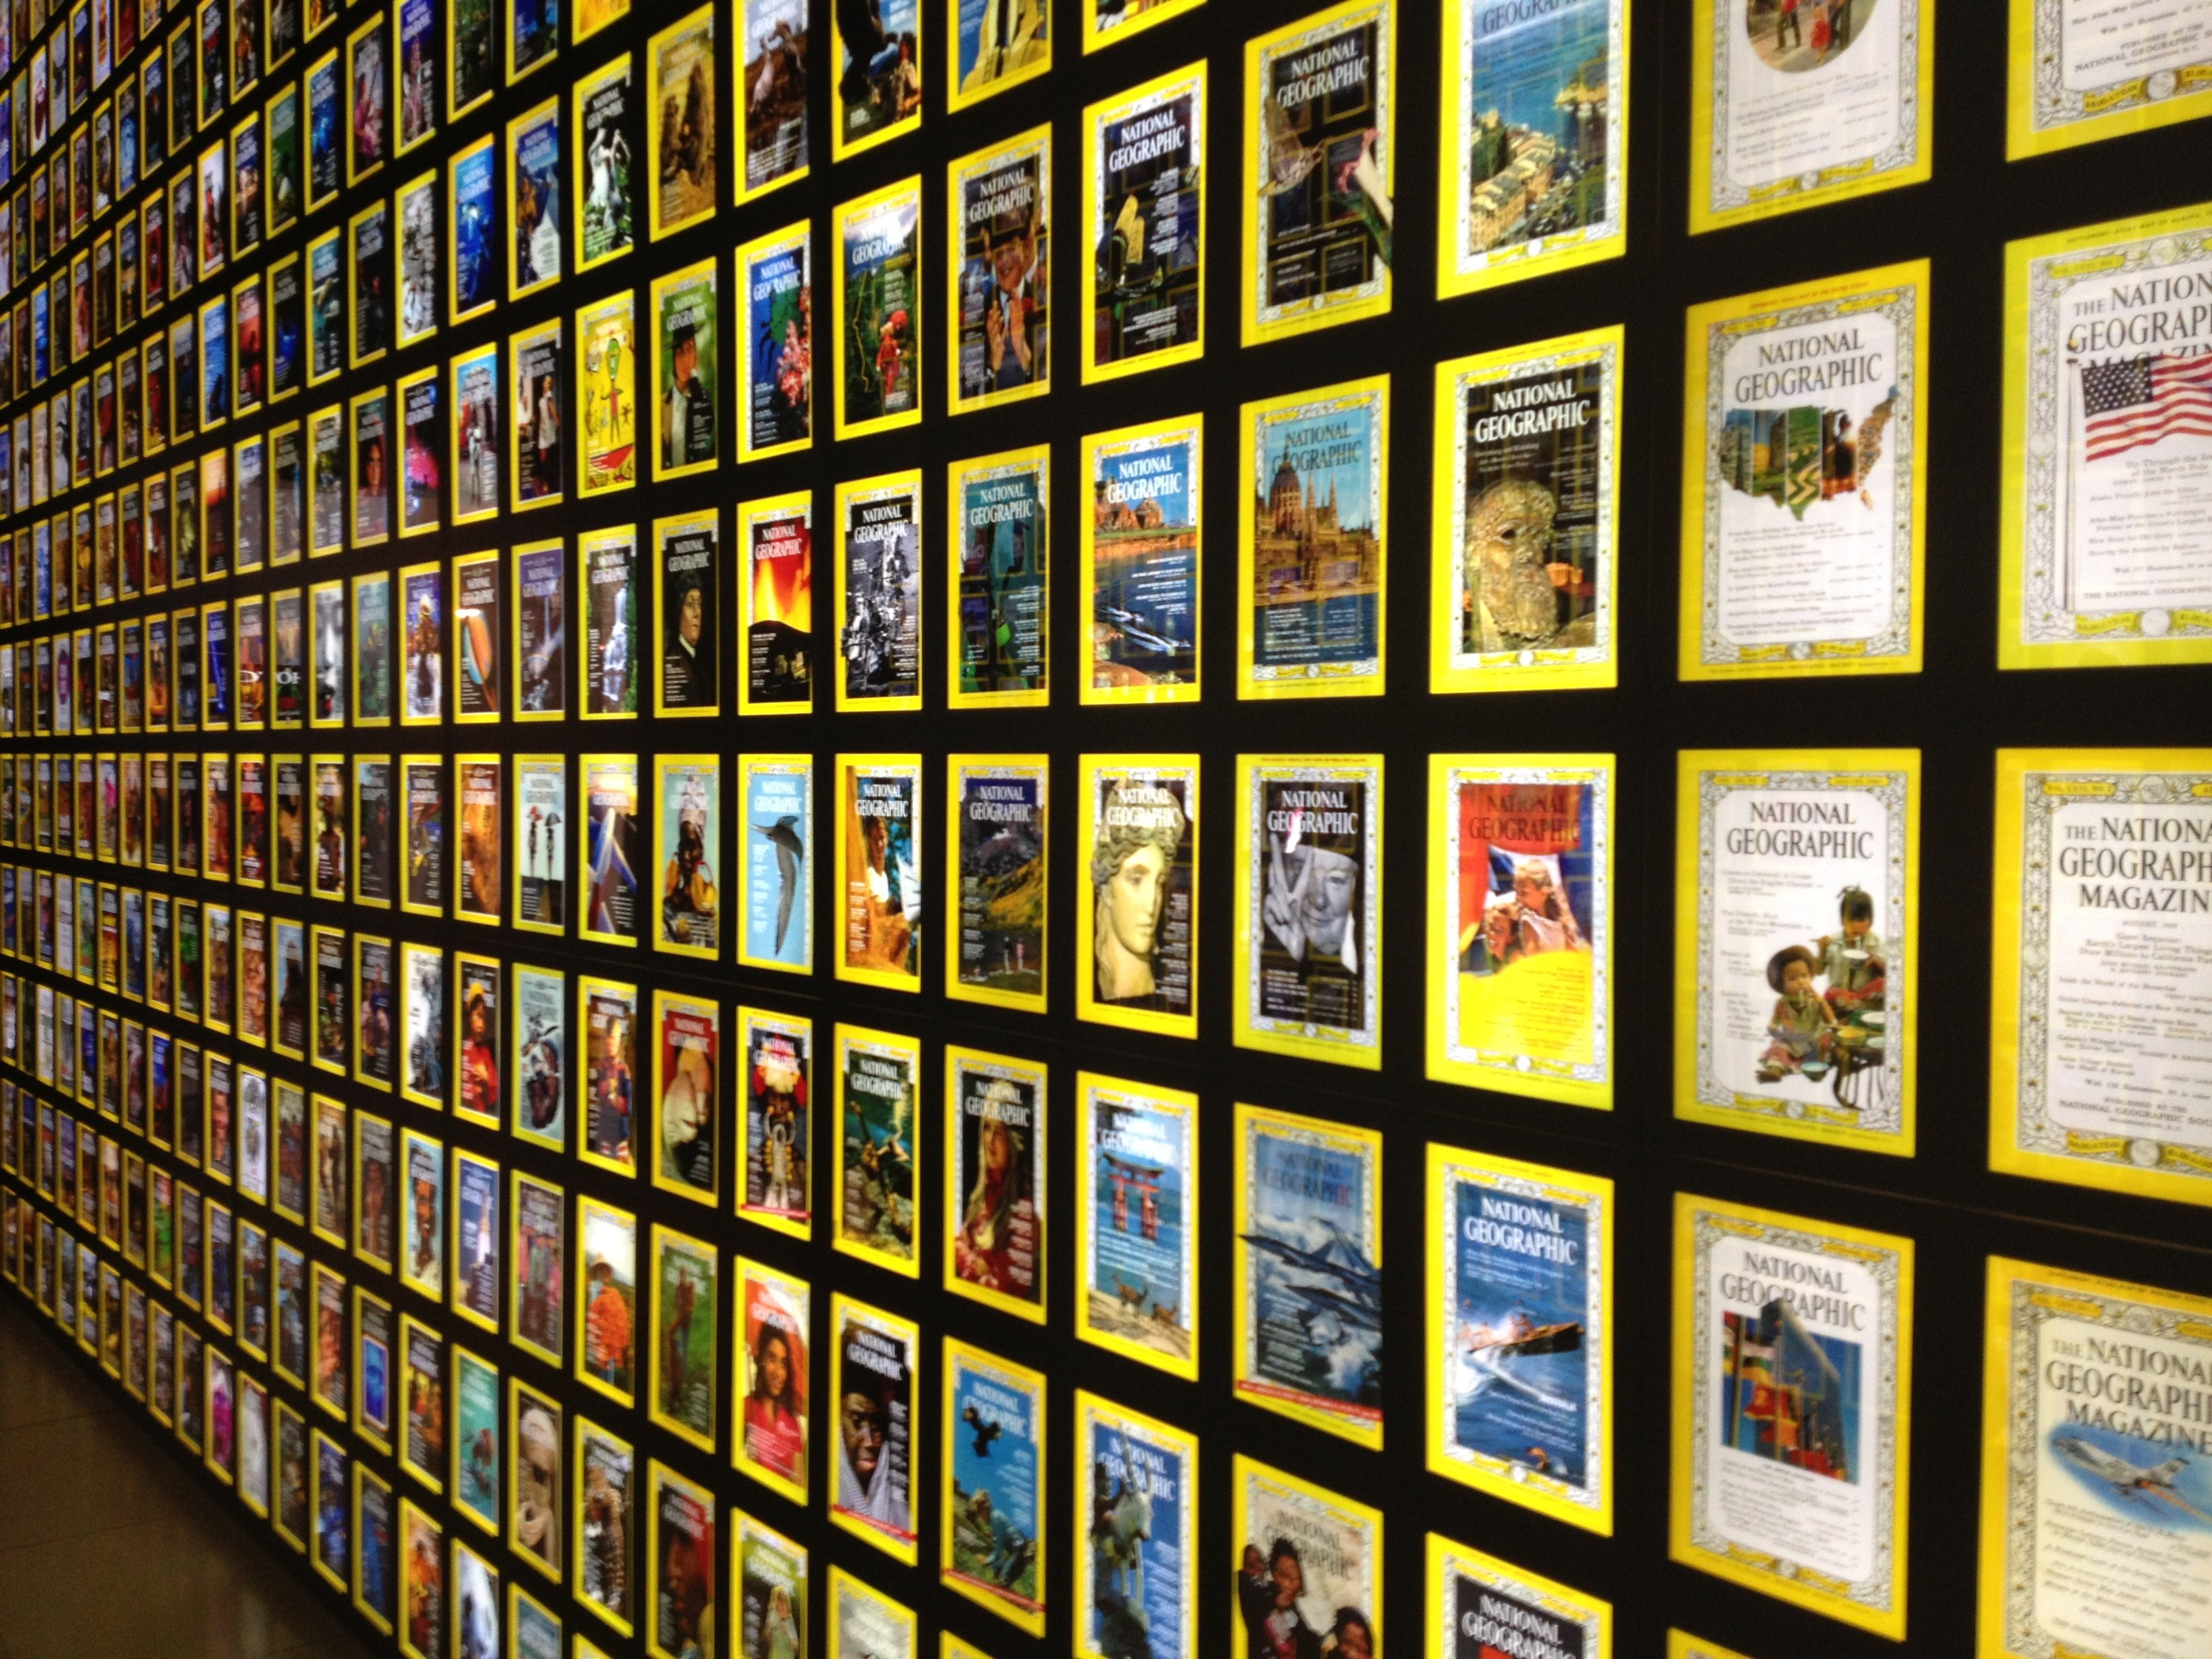 National Geographic hires university professor to examine its own past issues for racism